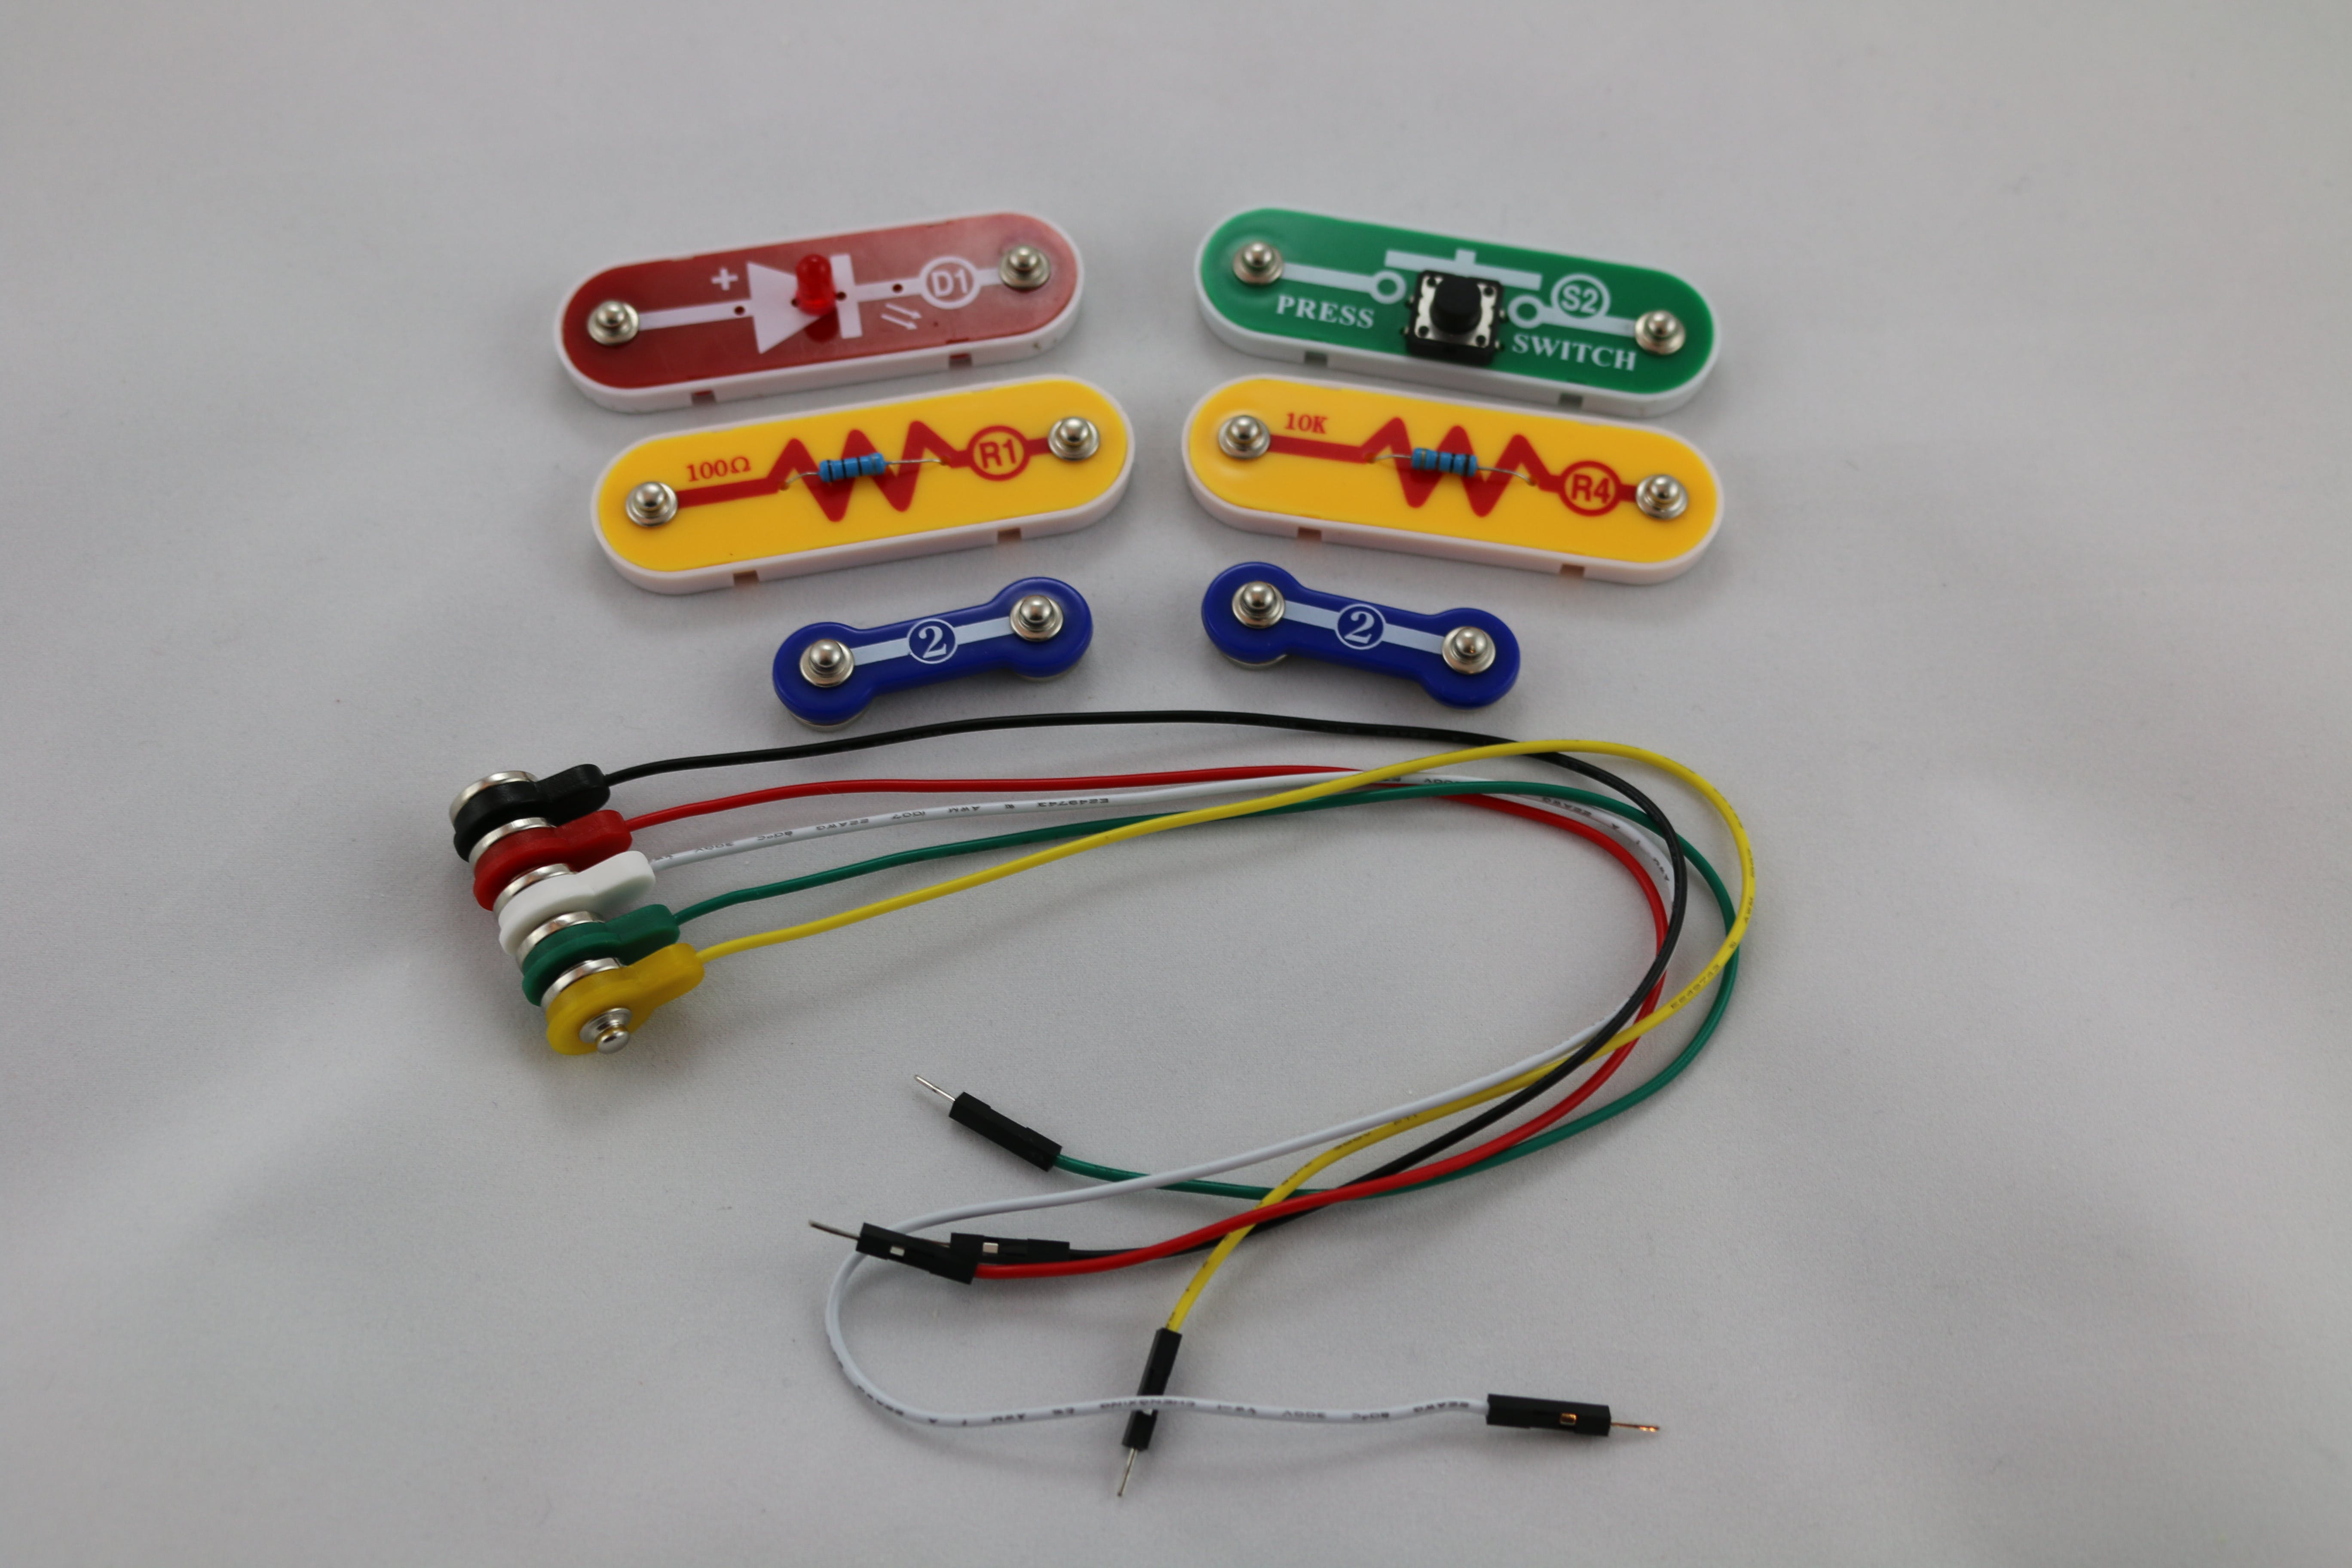 All Snap Circuit parts